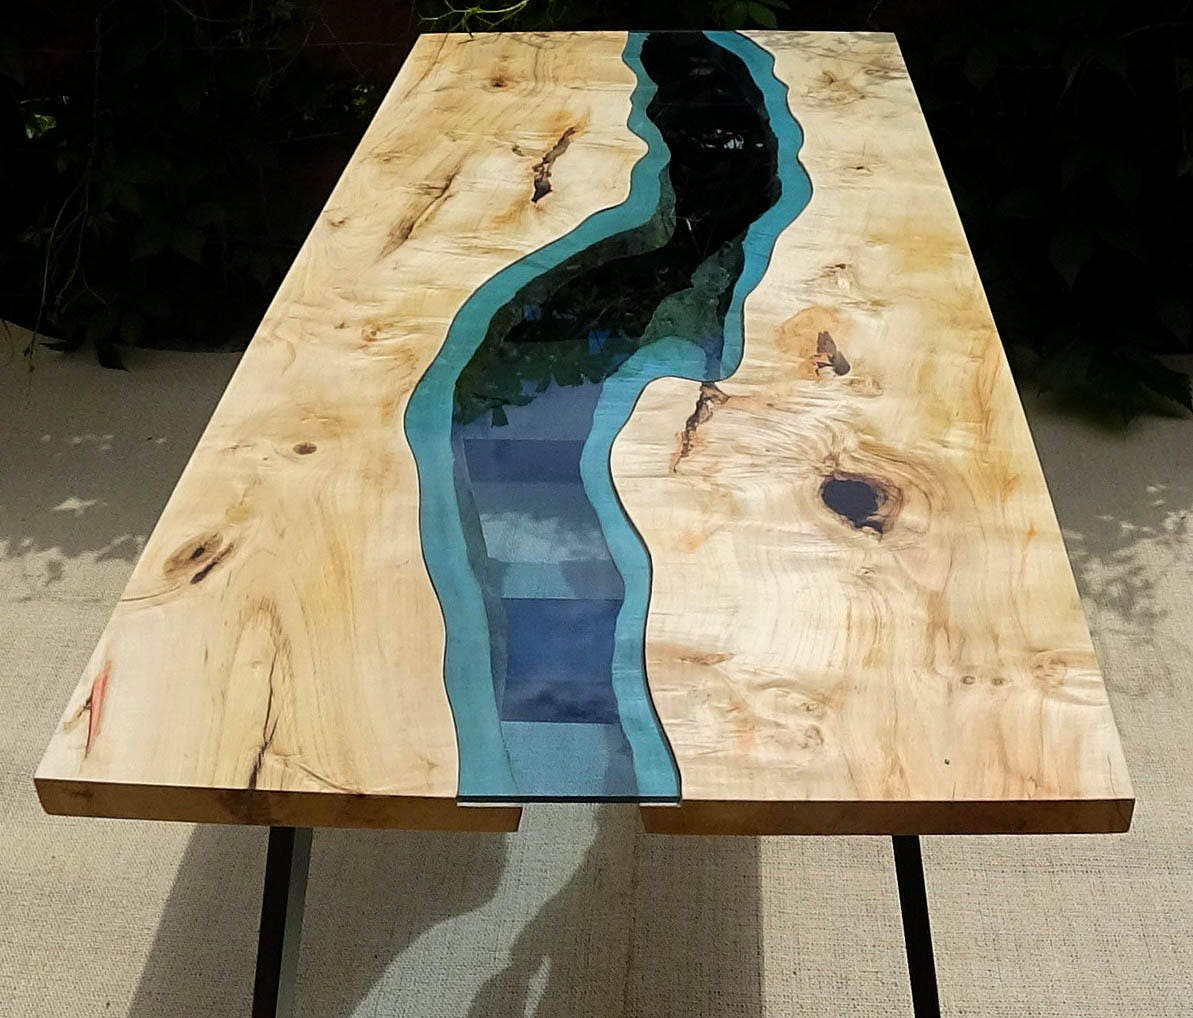 live rand fluss tisch mit mit epoxy inlay verkauft. Black Bedroom Furniture Sets. Home Design Ideas